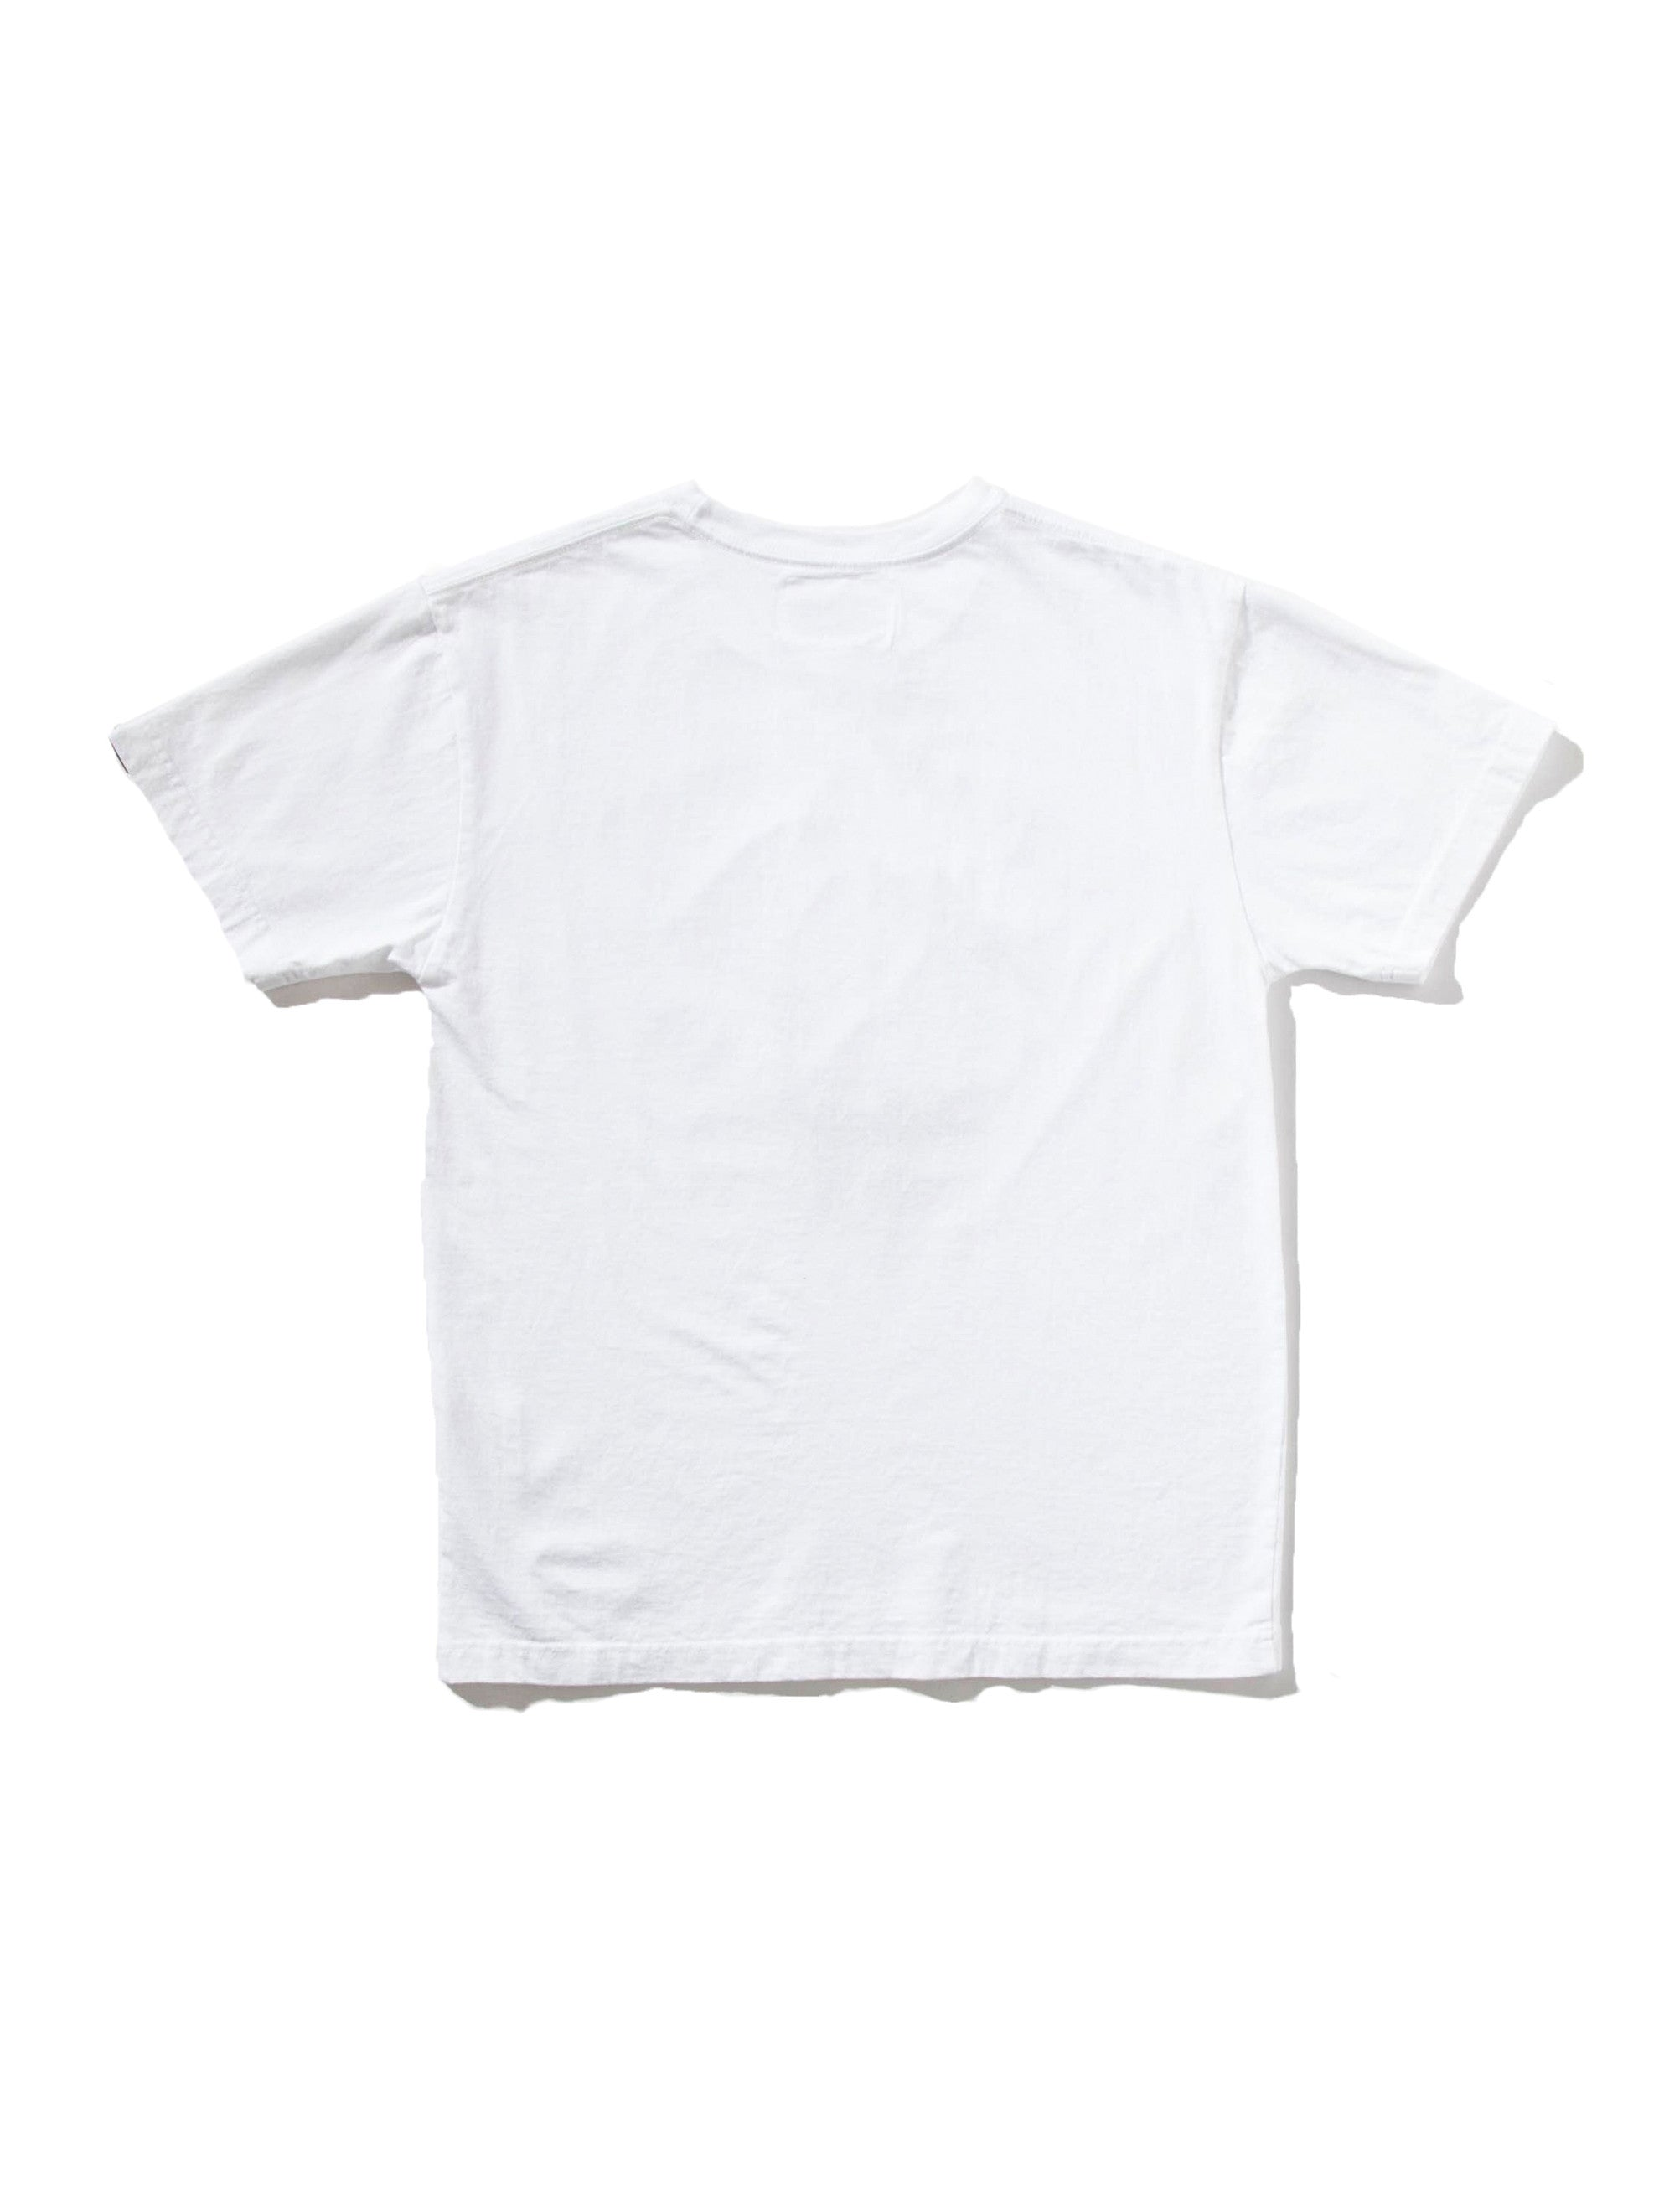 White Metal Up T-Shirt 7